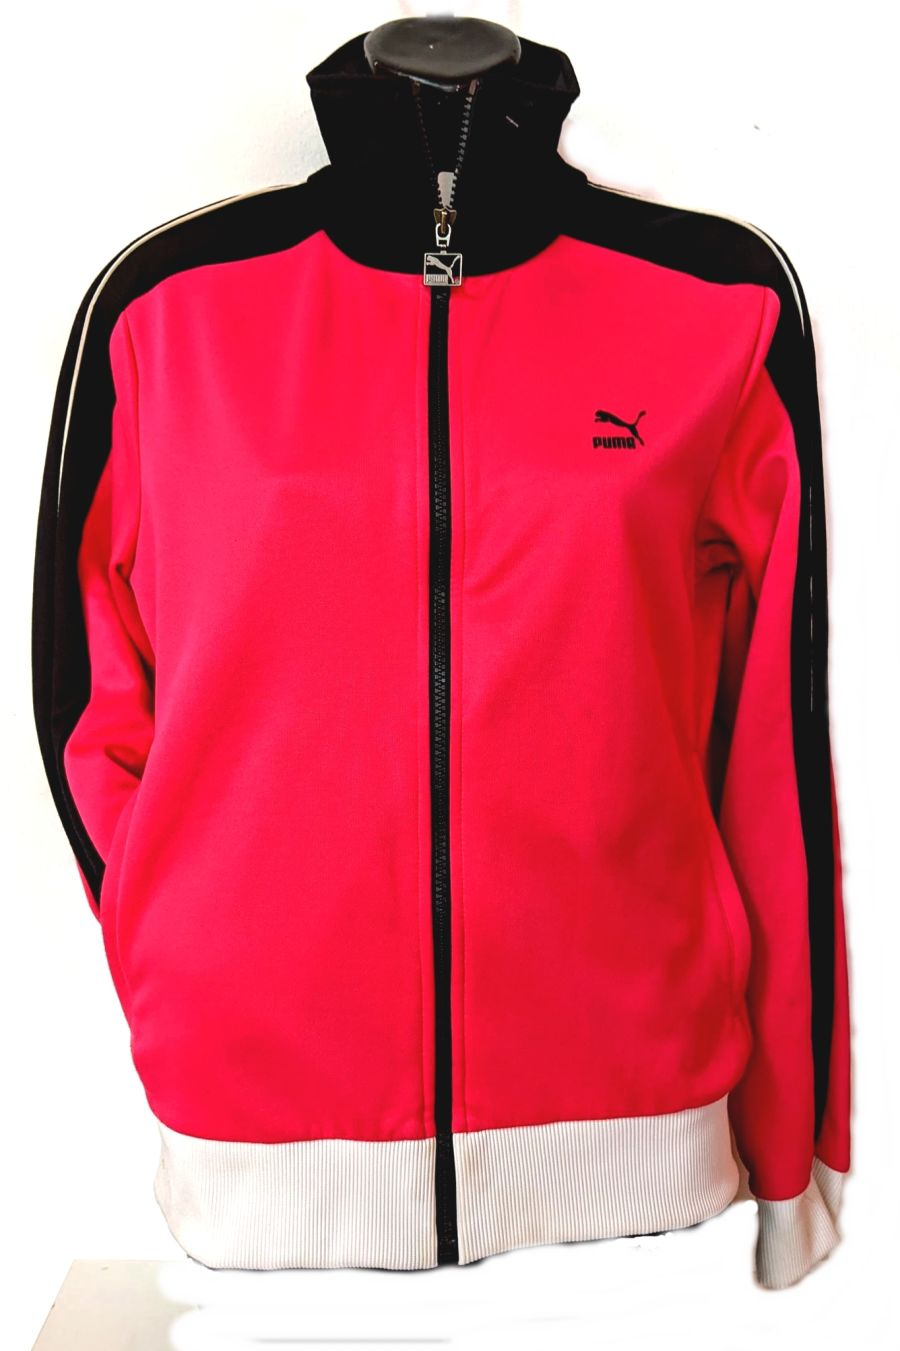 Vintage Y2K Black and Pink Puma Tracksuit Jacket